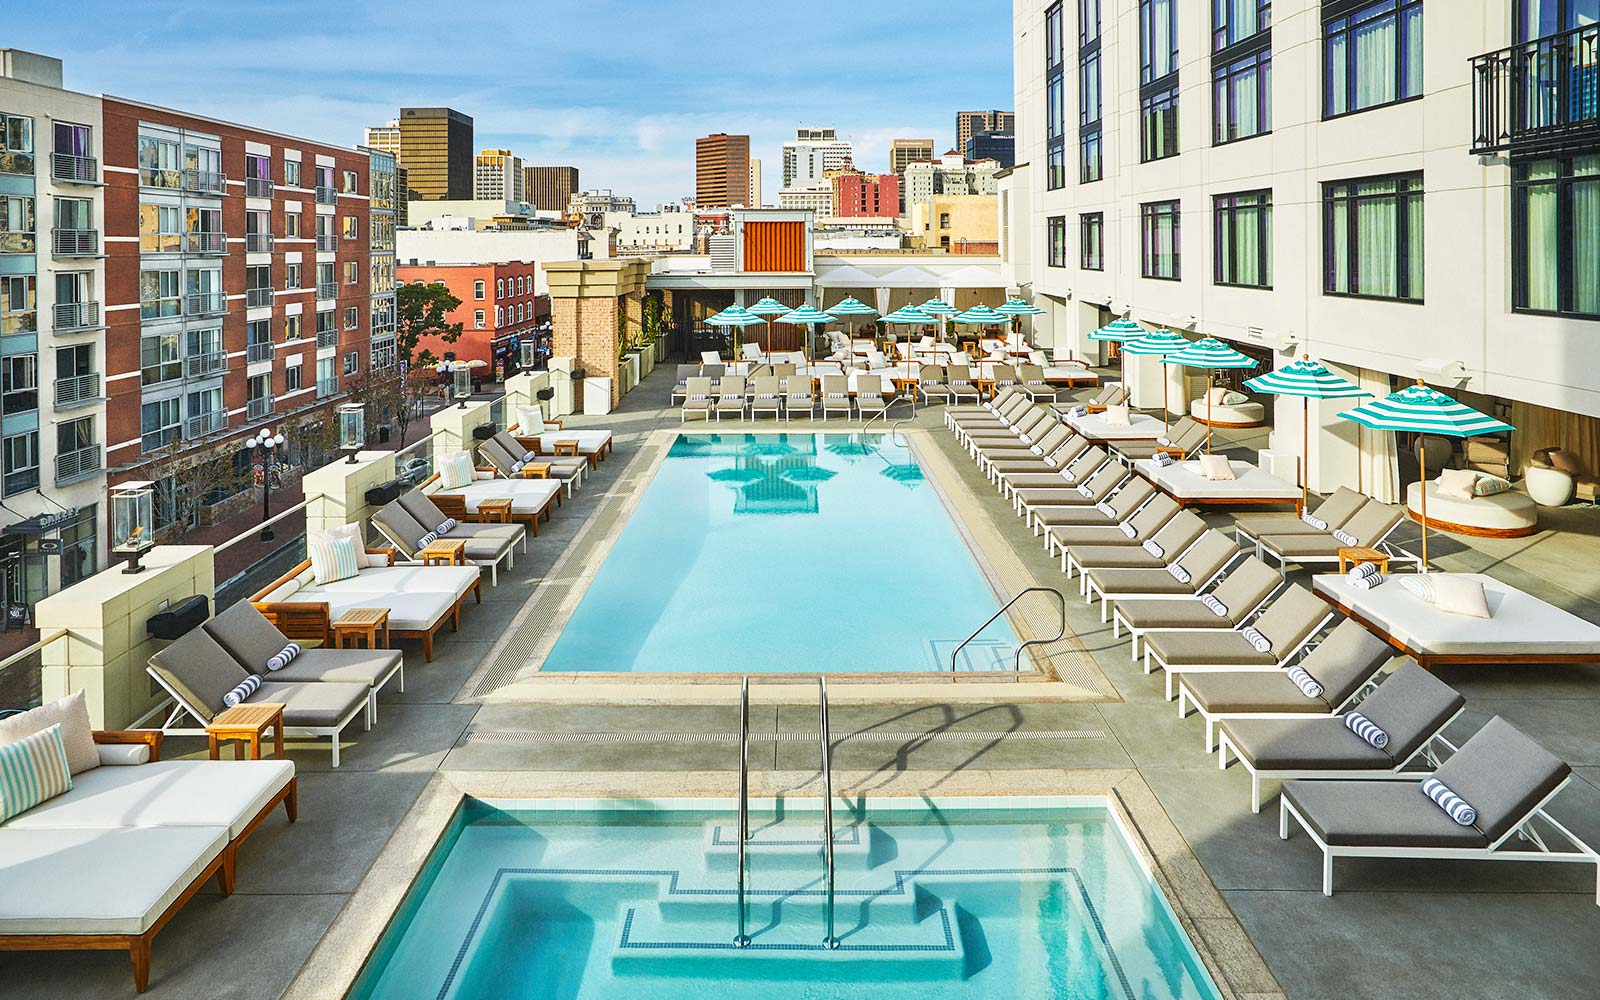 Pendry San Diego Hotel rooftop pool house restaurant lounge